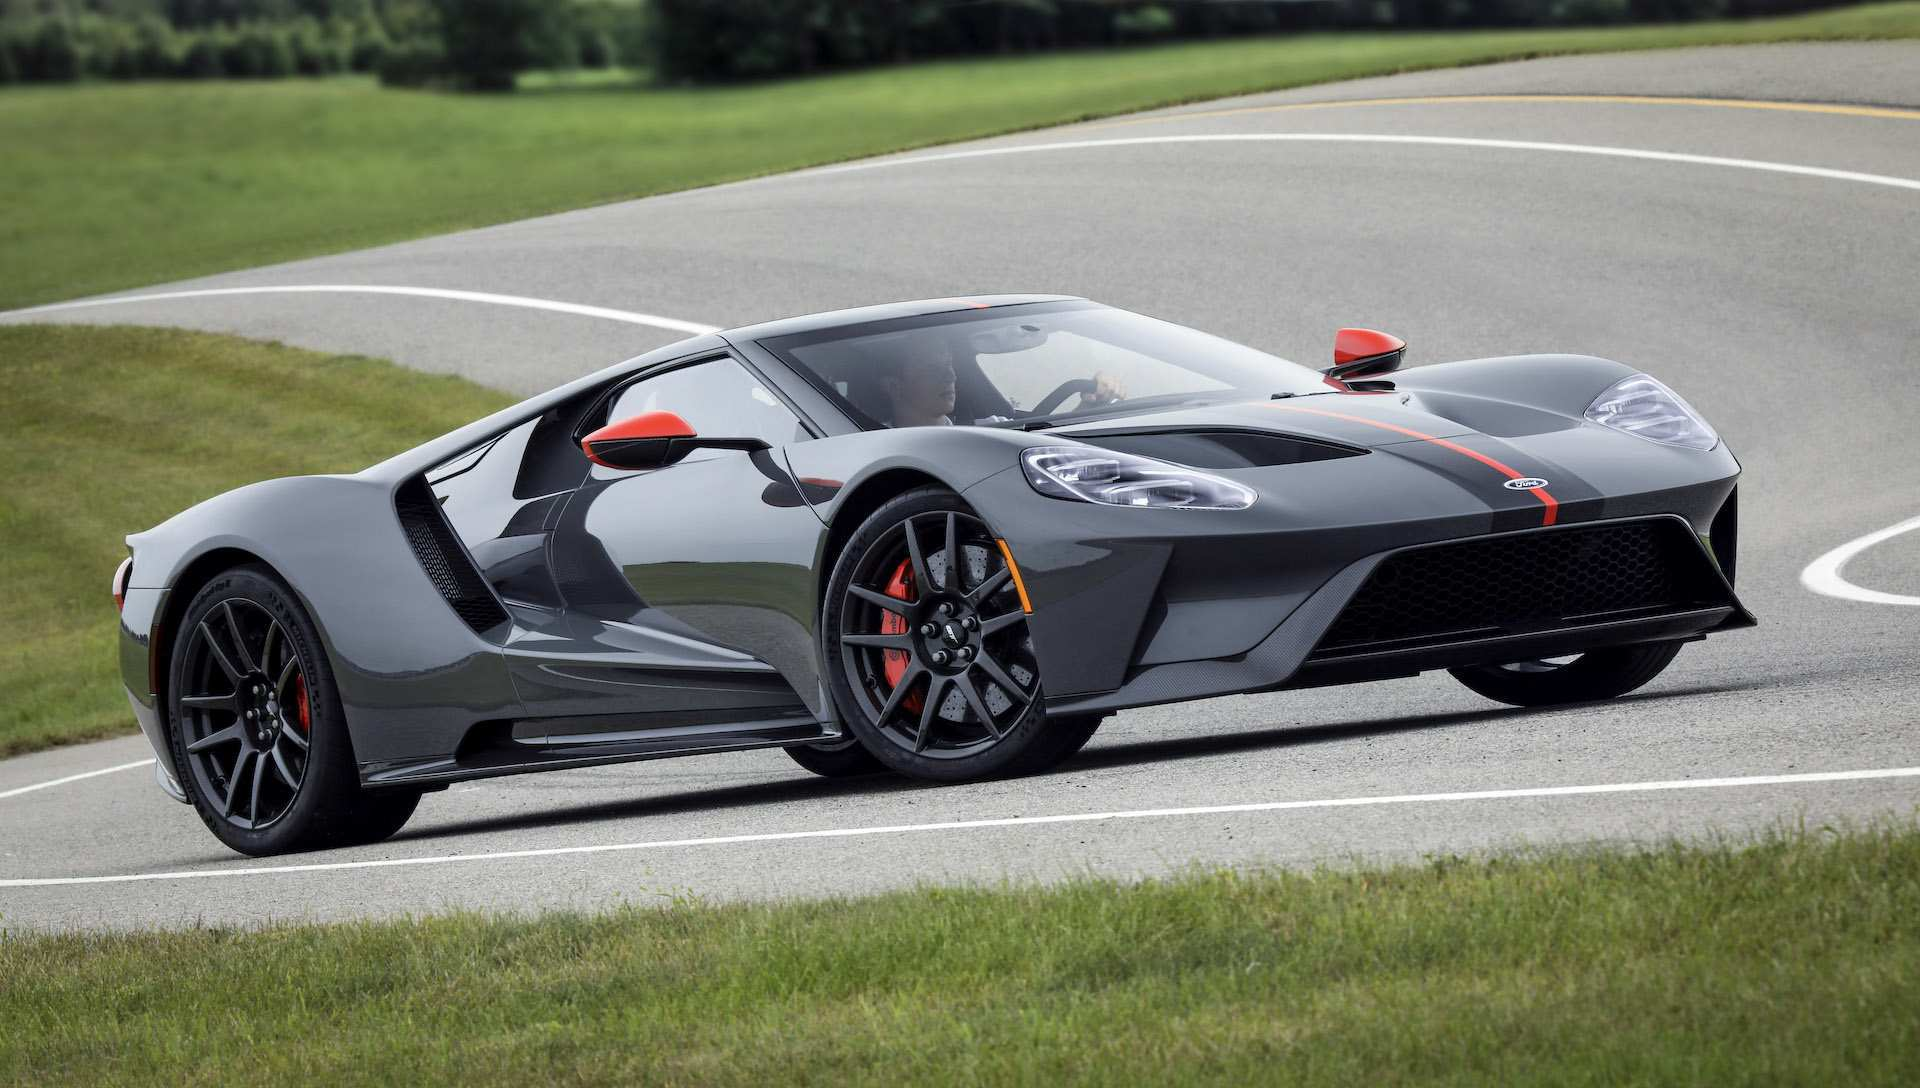 68 The Best 2019 Ford Gt Supercar Engine